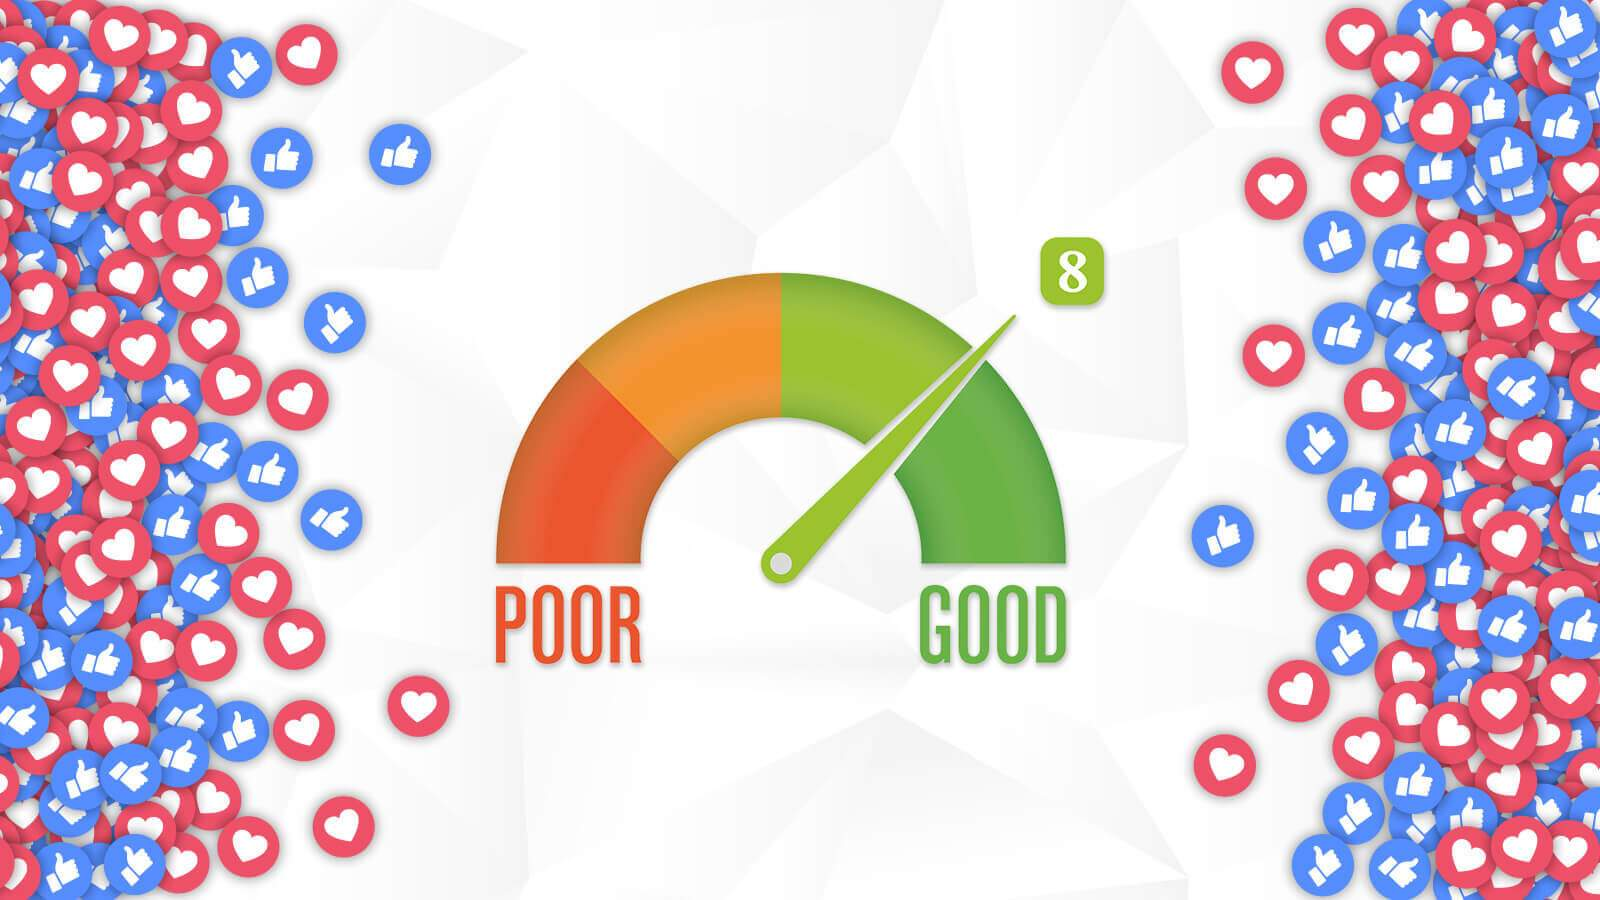 Relevance Score in Facebook Ads – What is it and How to Improve it